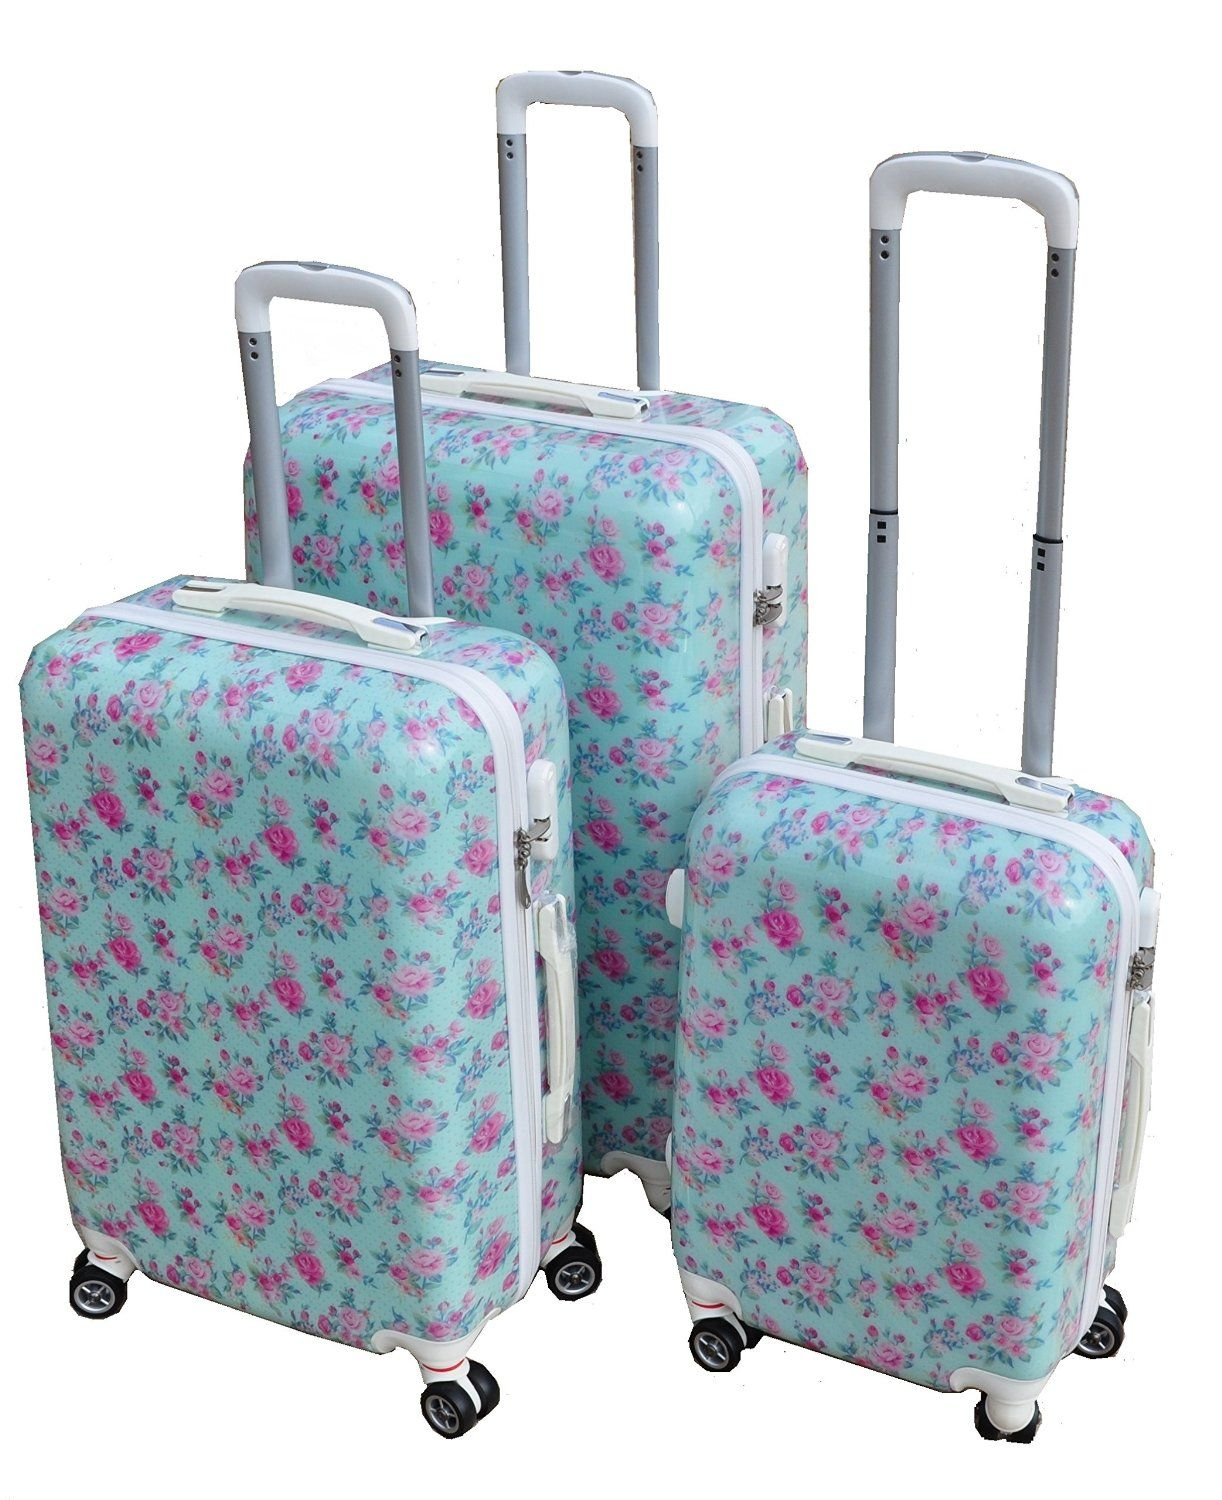 AQUA ROSE BLUE & PINK LARGE 28 SUITCASE LUGGAGE CASE HARD SHELL ...